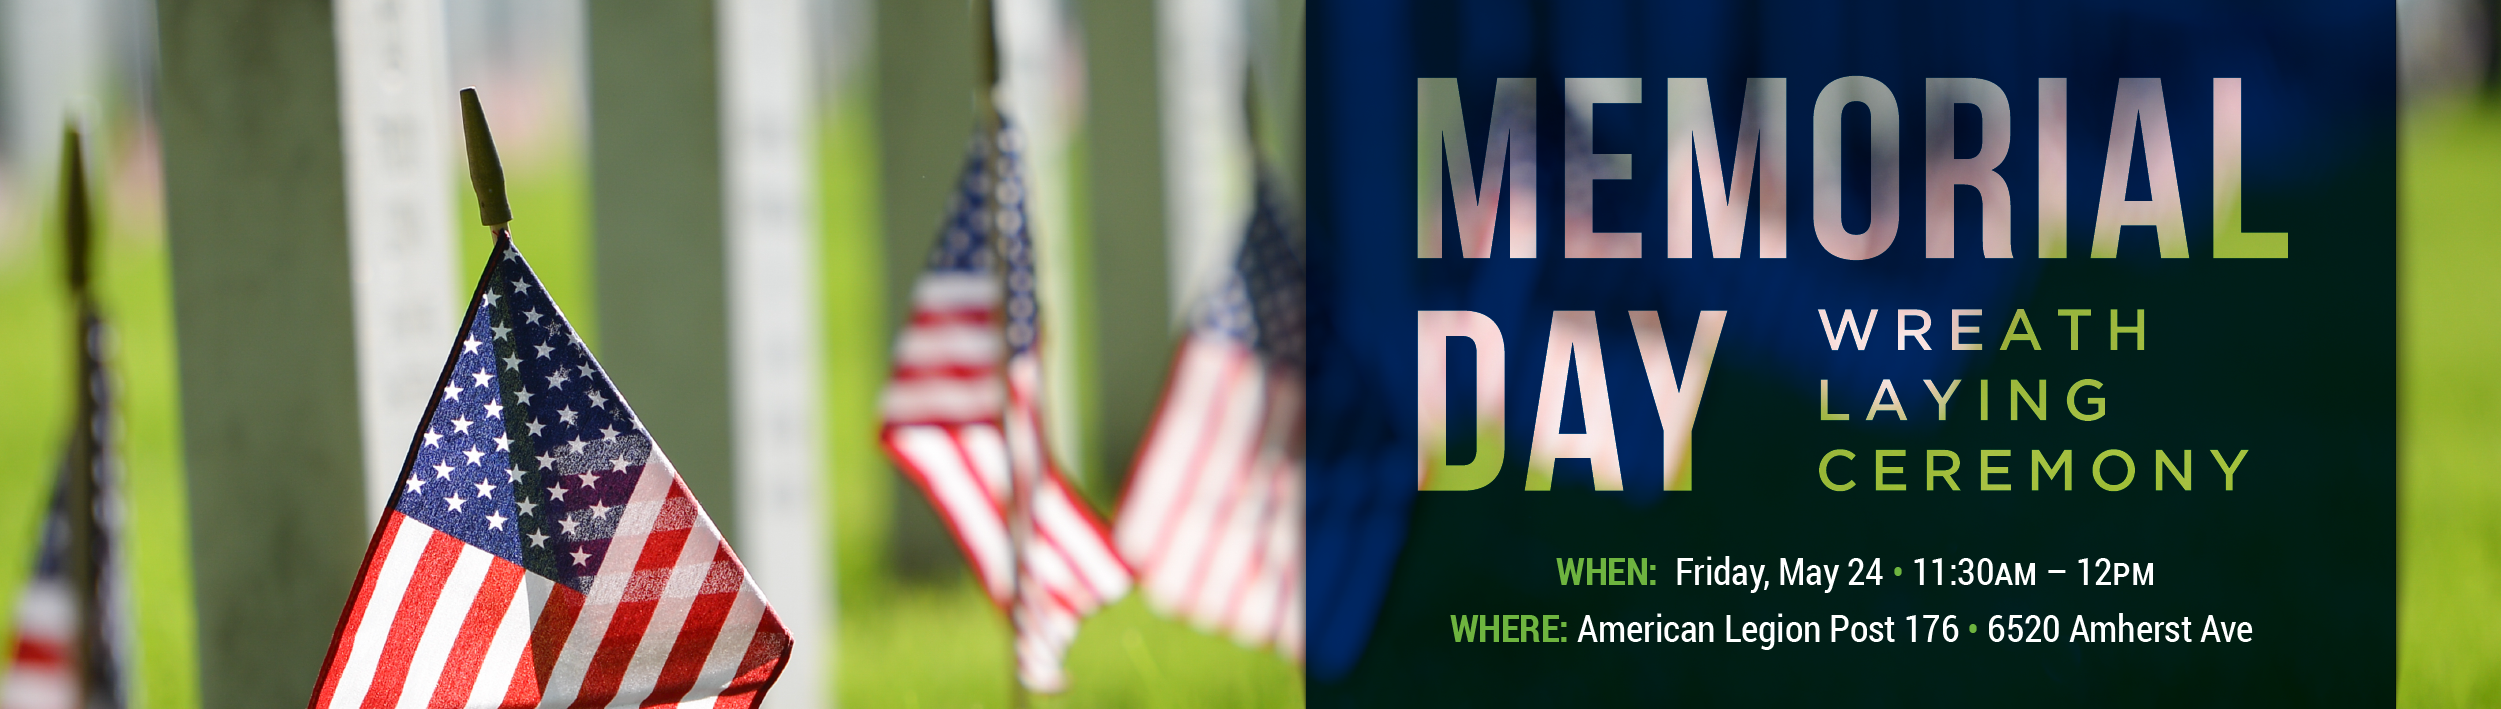 Memorial-Day-Wreath-Laying-Ceremony-web.png